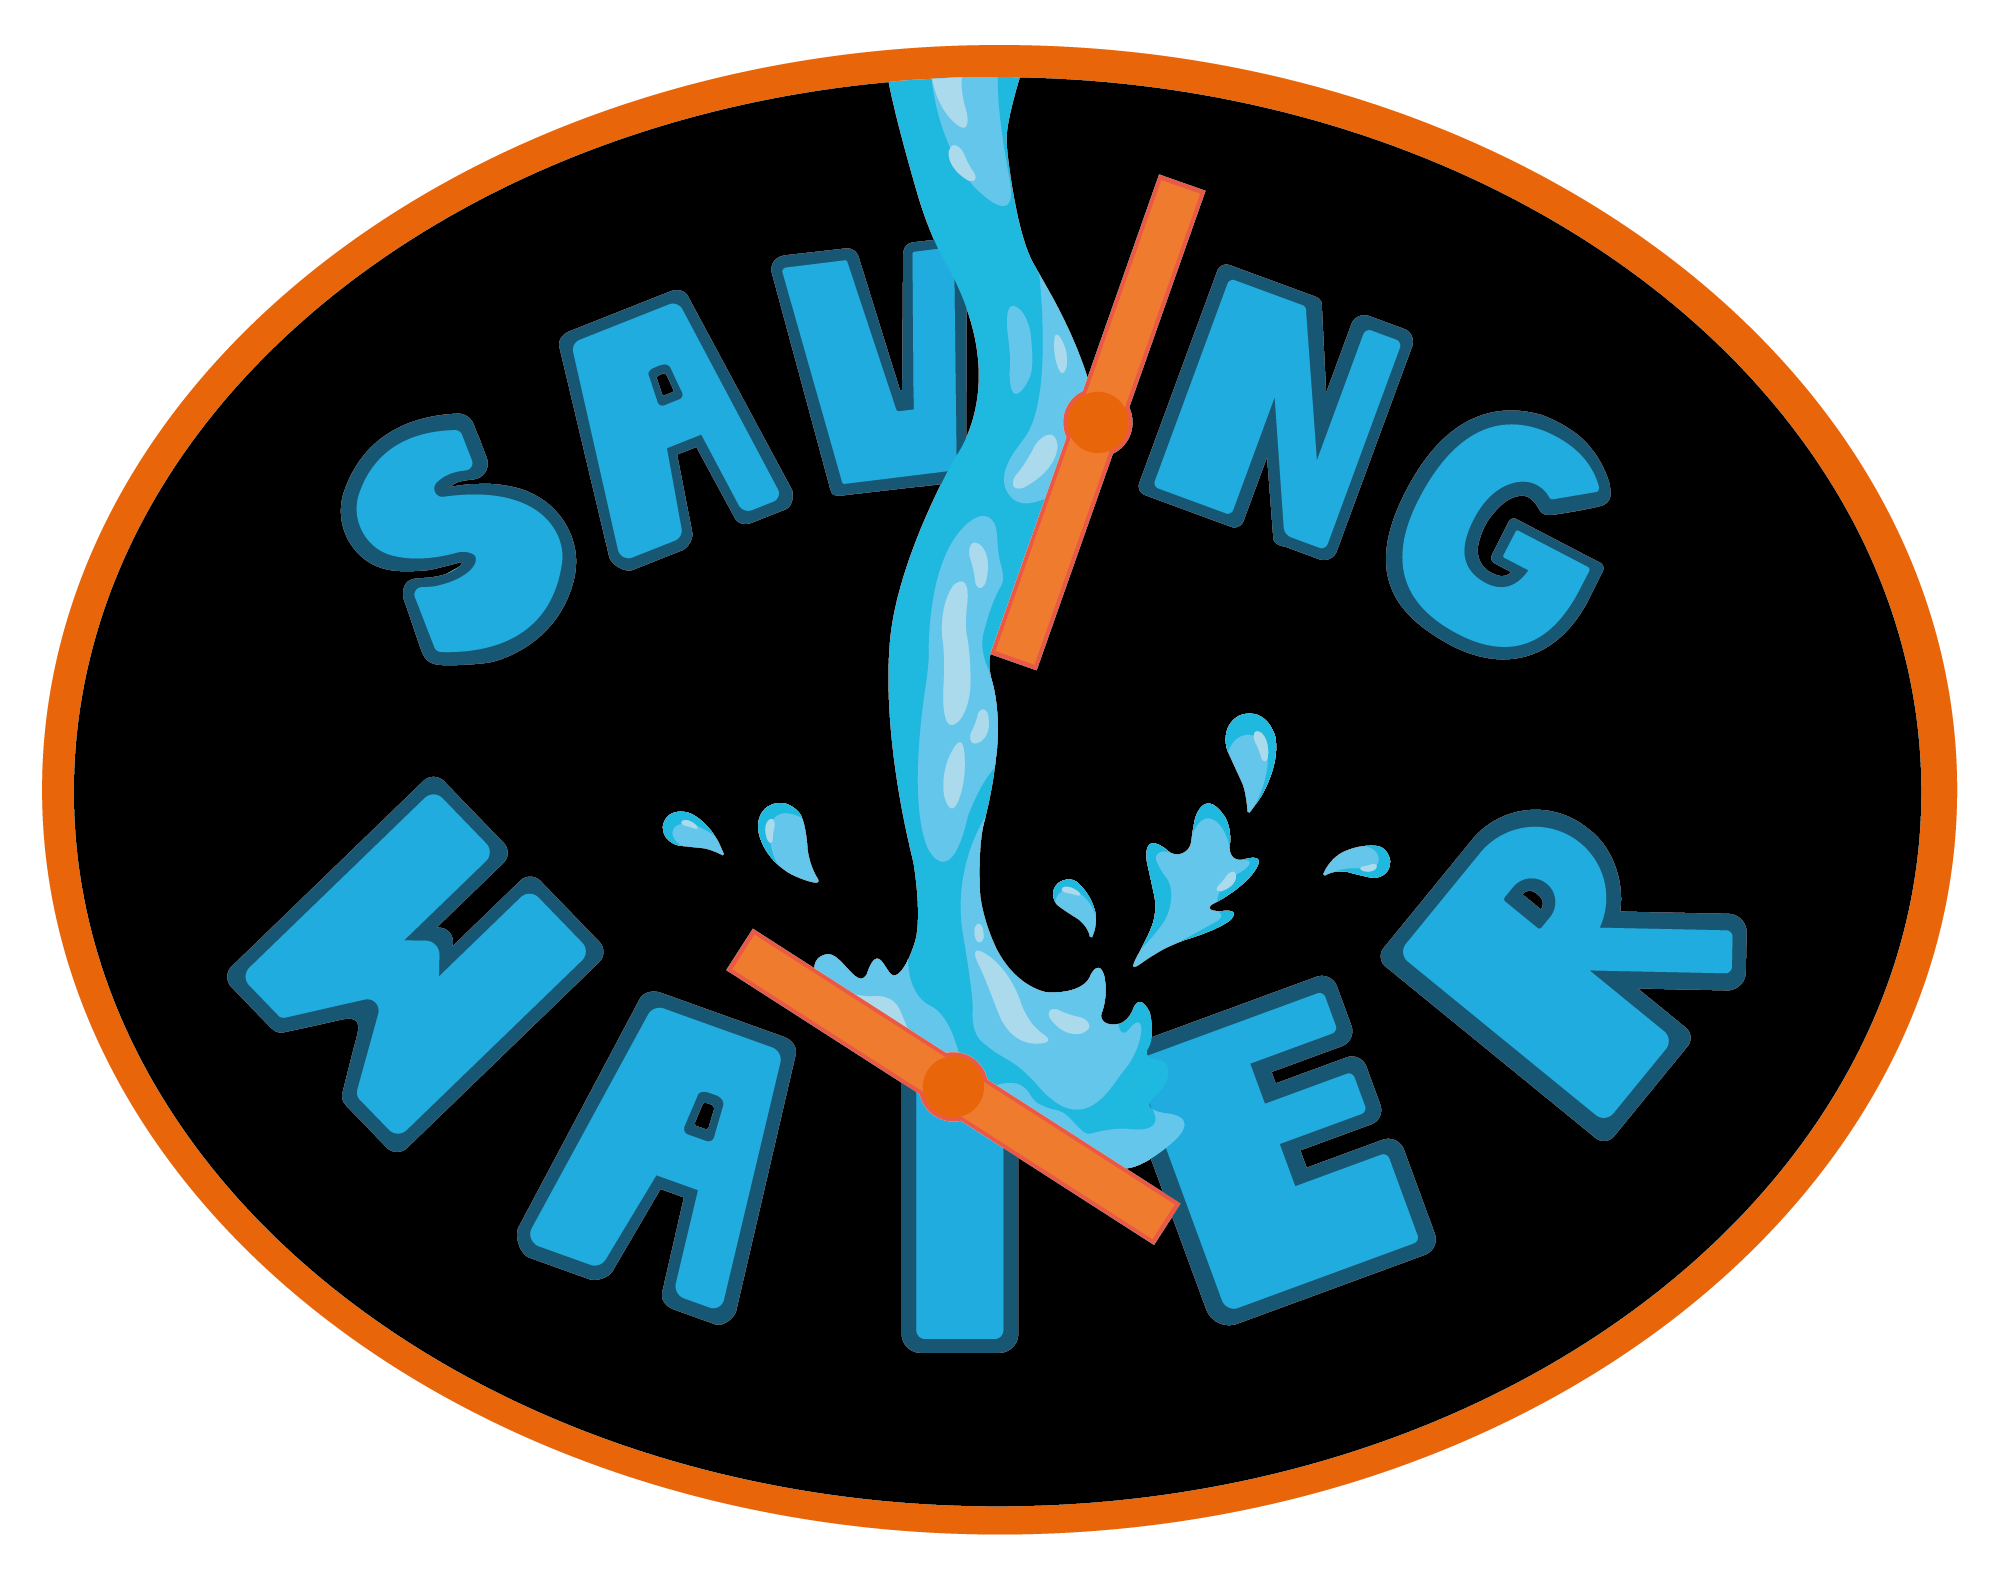 Saving-Water_Logo_01_crowdgames